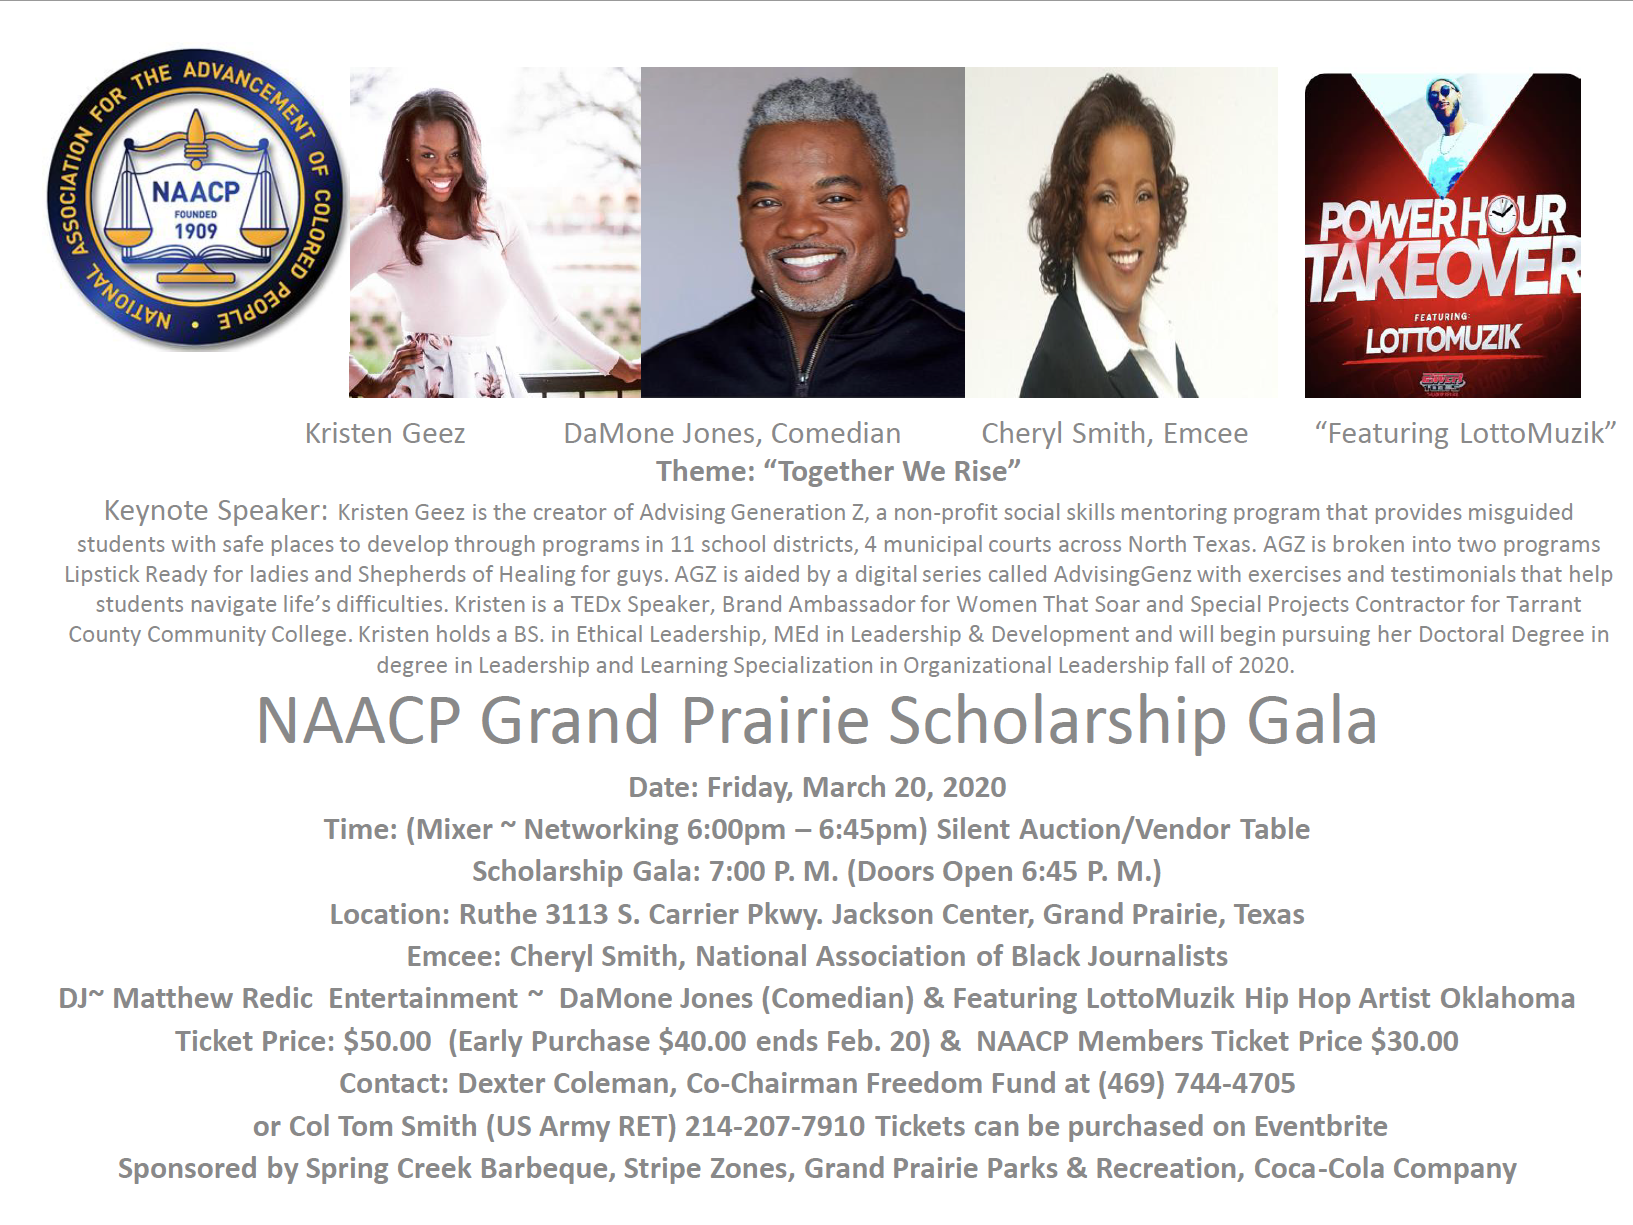 NAACP Flyer